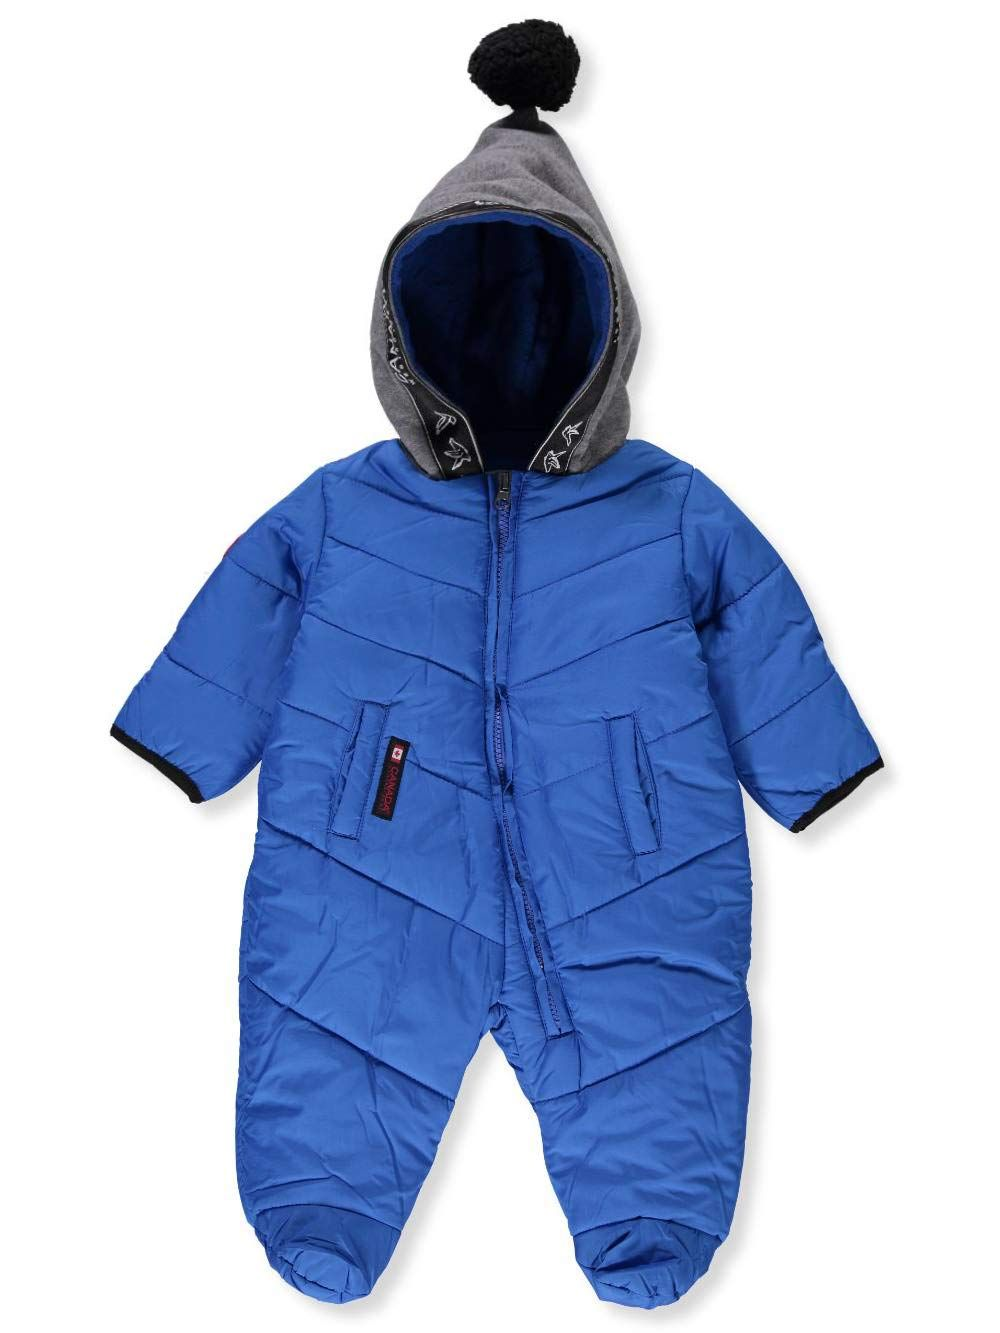 Canada Weather Gear Baby Boys 1piece Snowsuit Blue 36 Months Want Extra Info Click On The Picture This Is Baby Boy Outfits Kids Fashion Boy Baby Clothes